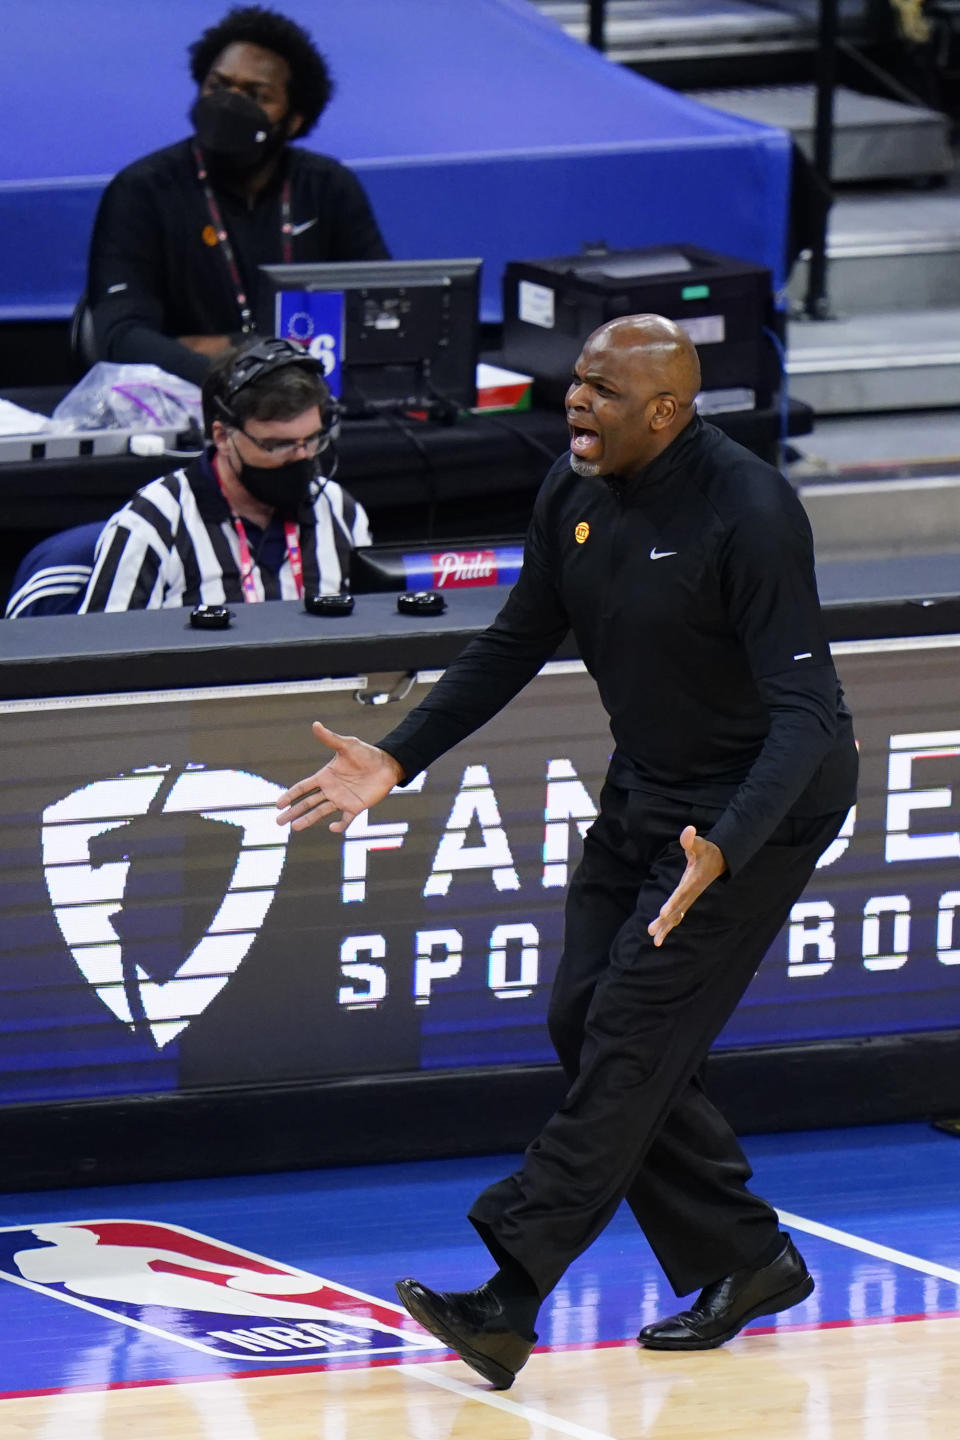 Atlanta Hawks' Nate McMillan reacts to a call during the first half of Game 5 in a second-round NBA basketball playoff series against the Philadelphia 76ers, Wednesday, June 16, 2021, in Philadelphia. (AP Photo/Matt Slocum)